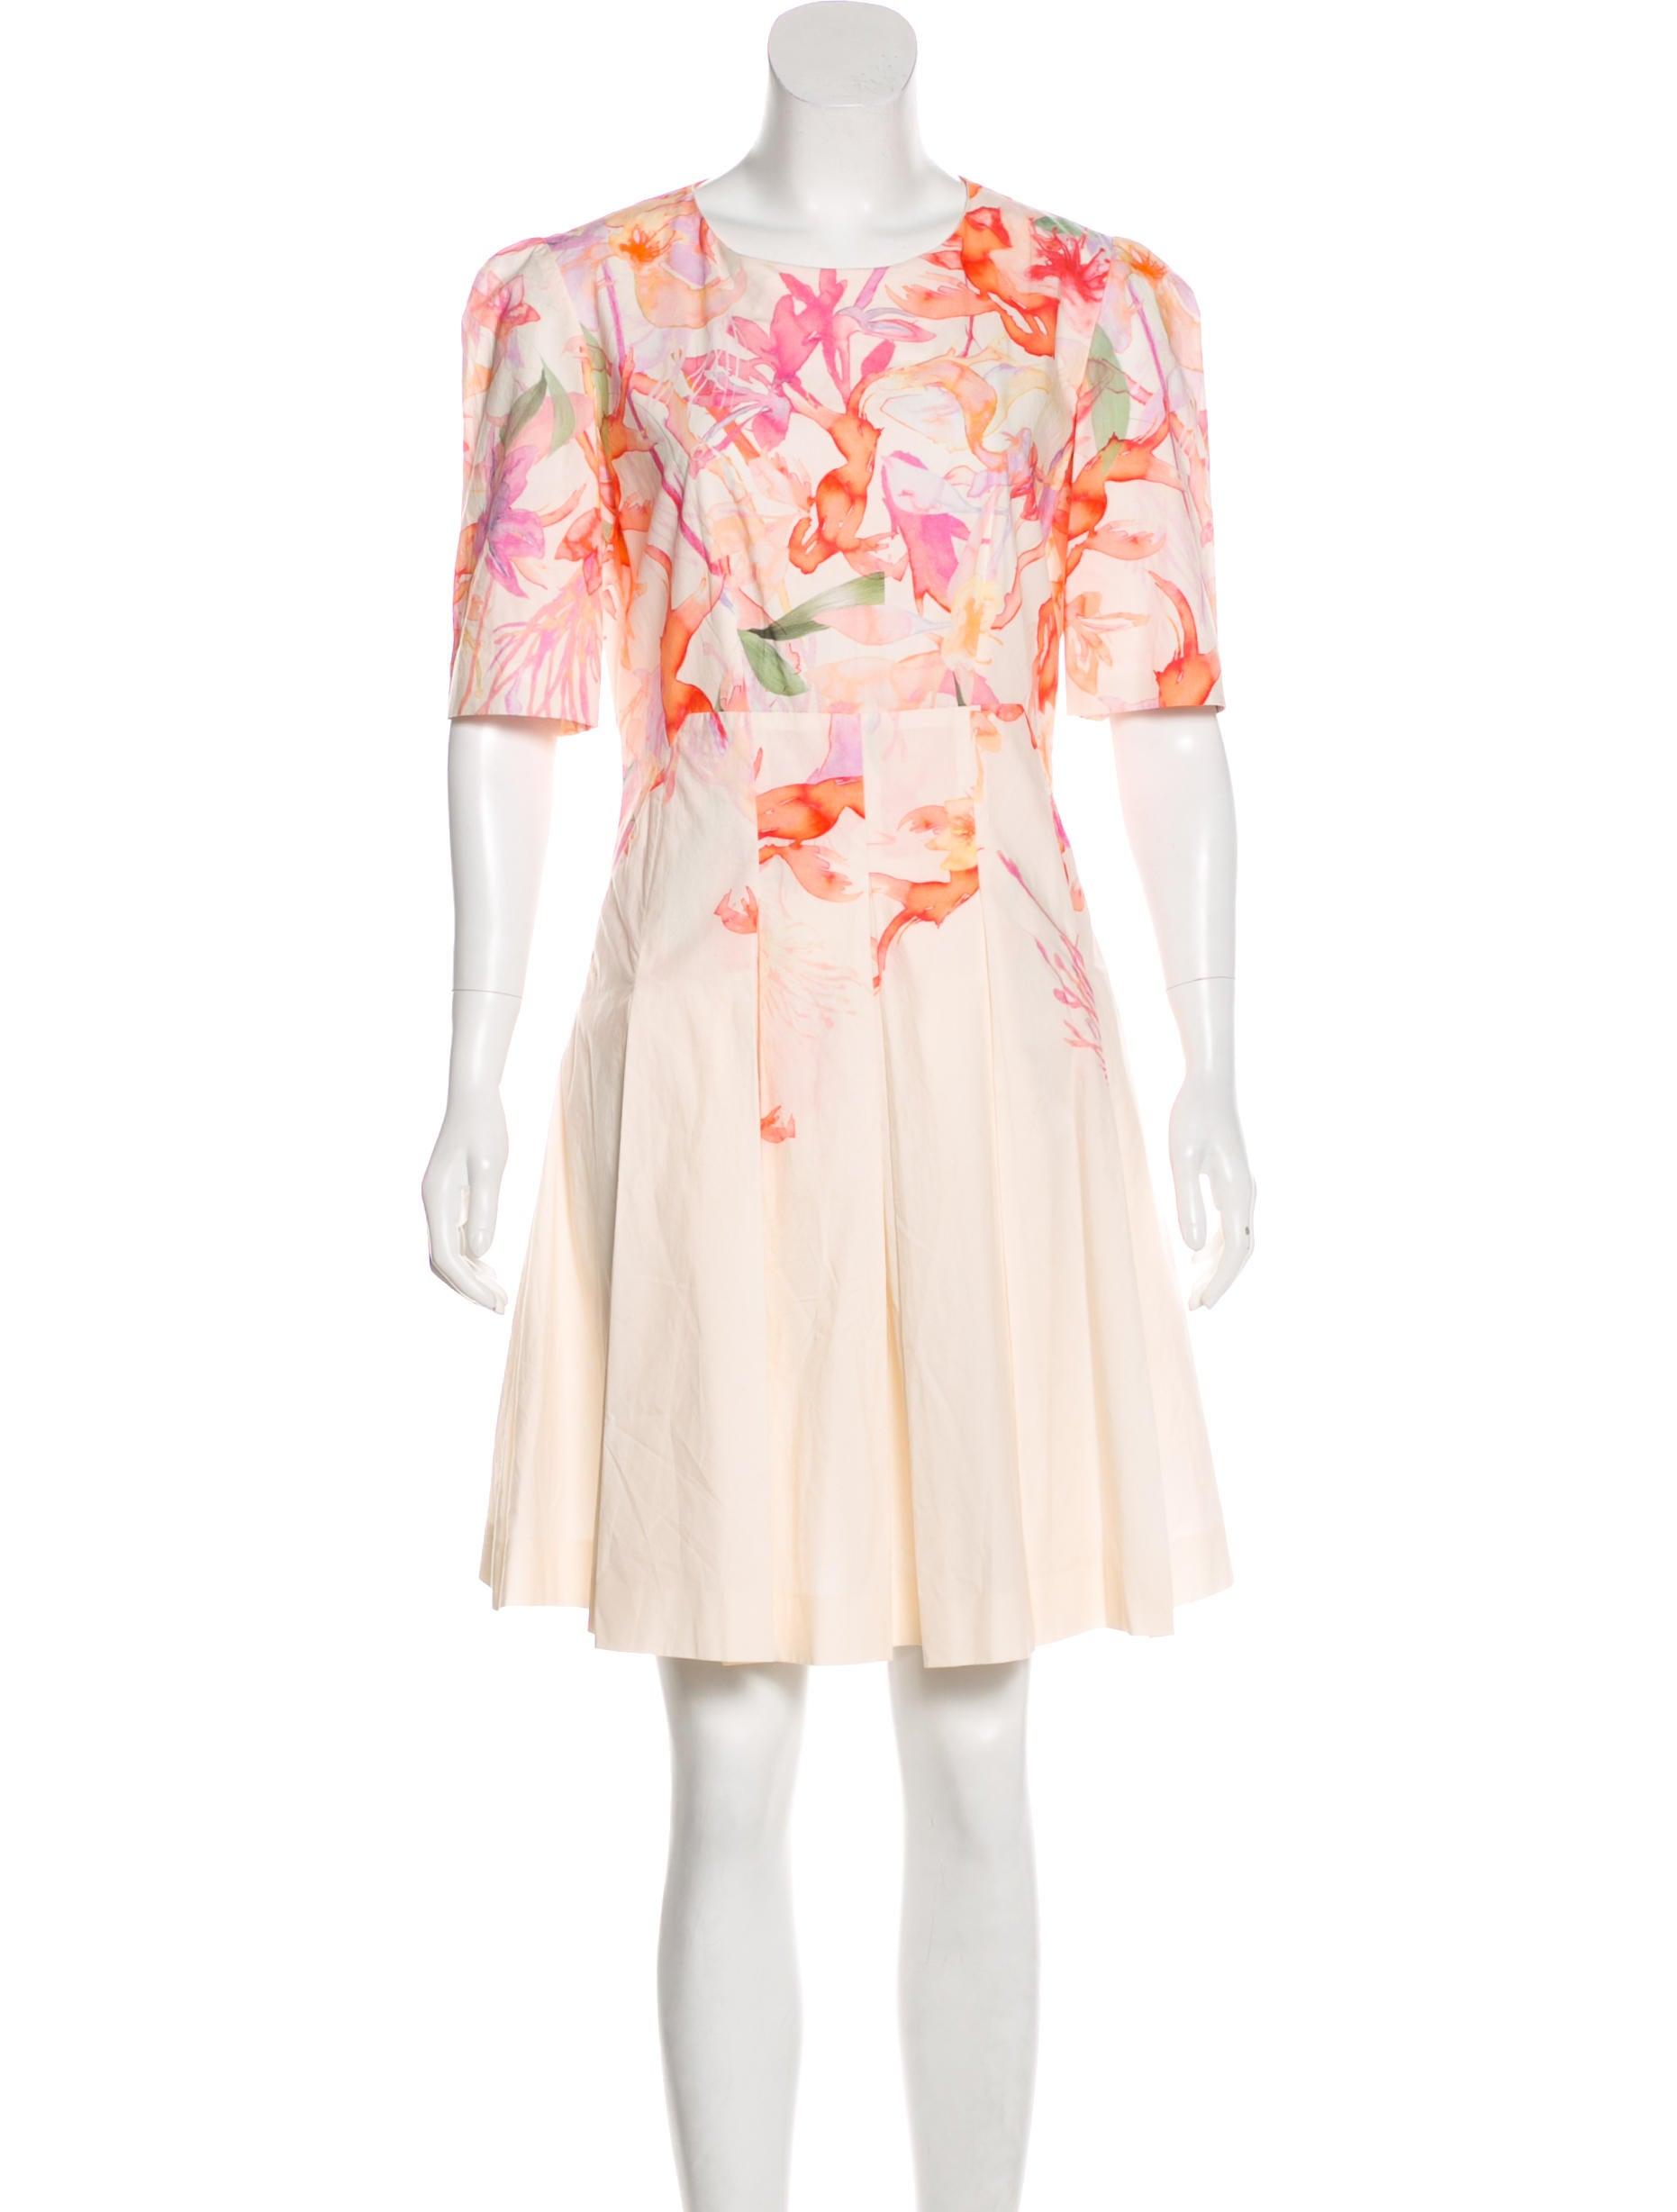 fb5d7308202 Cacharel Floral Print Knee-Length Dress - Clothing - CAC22287 | The ...